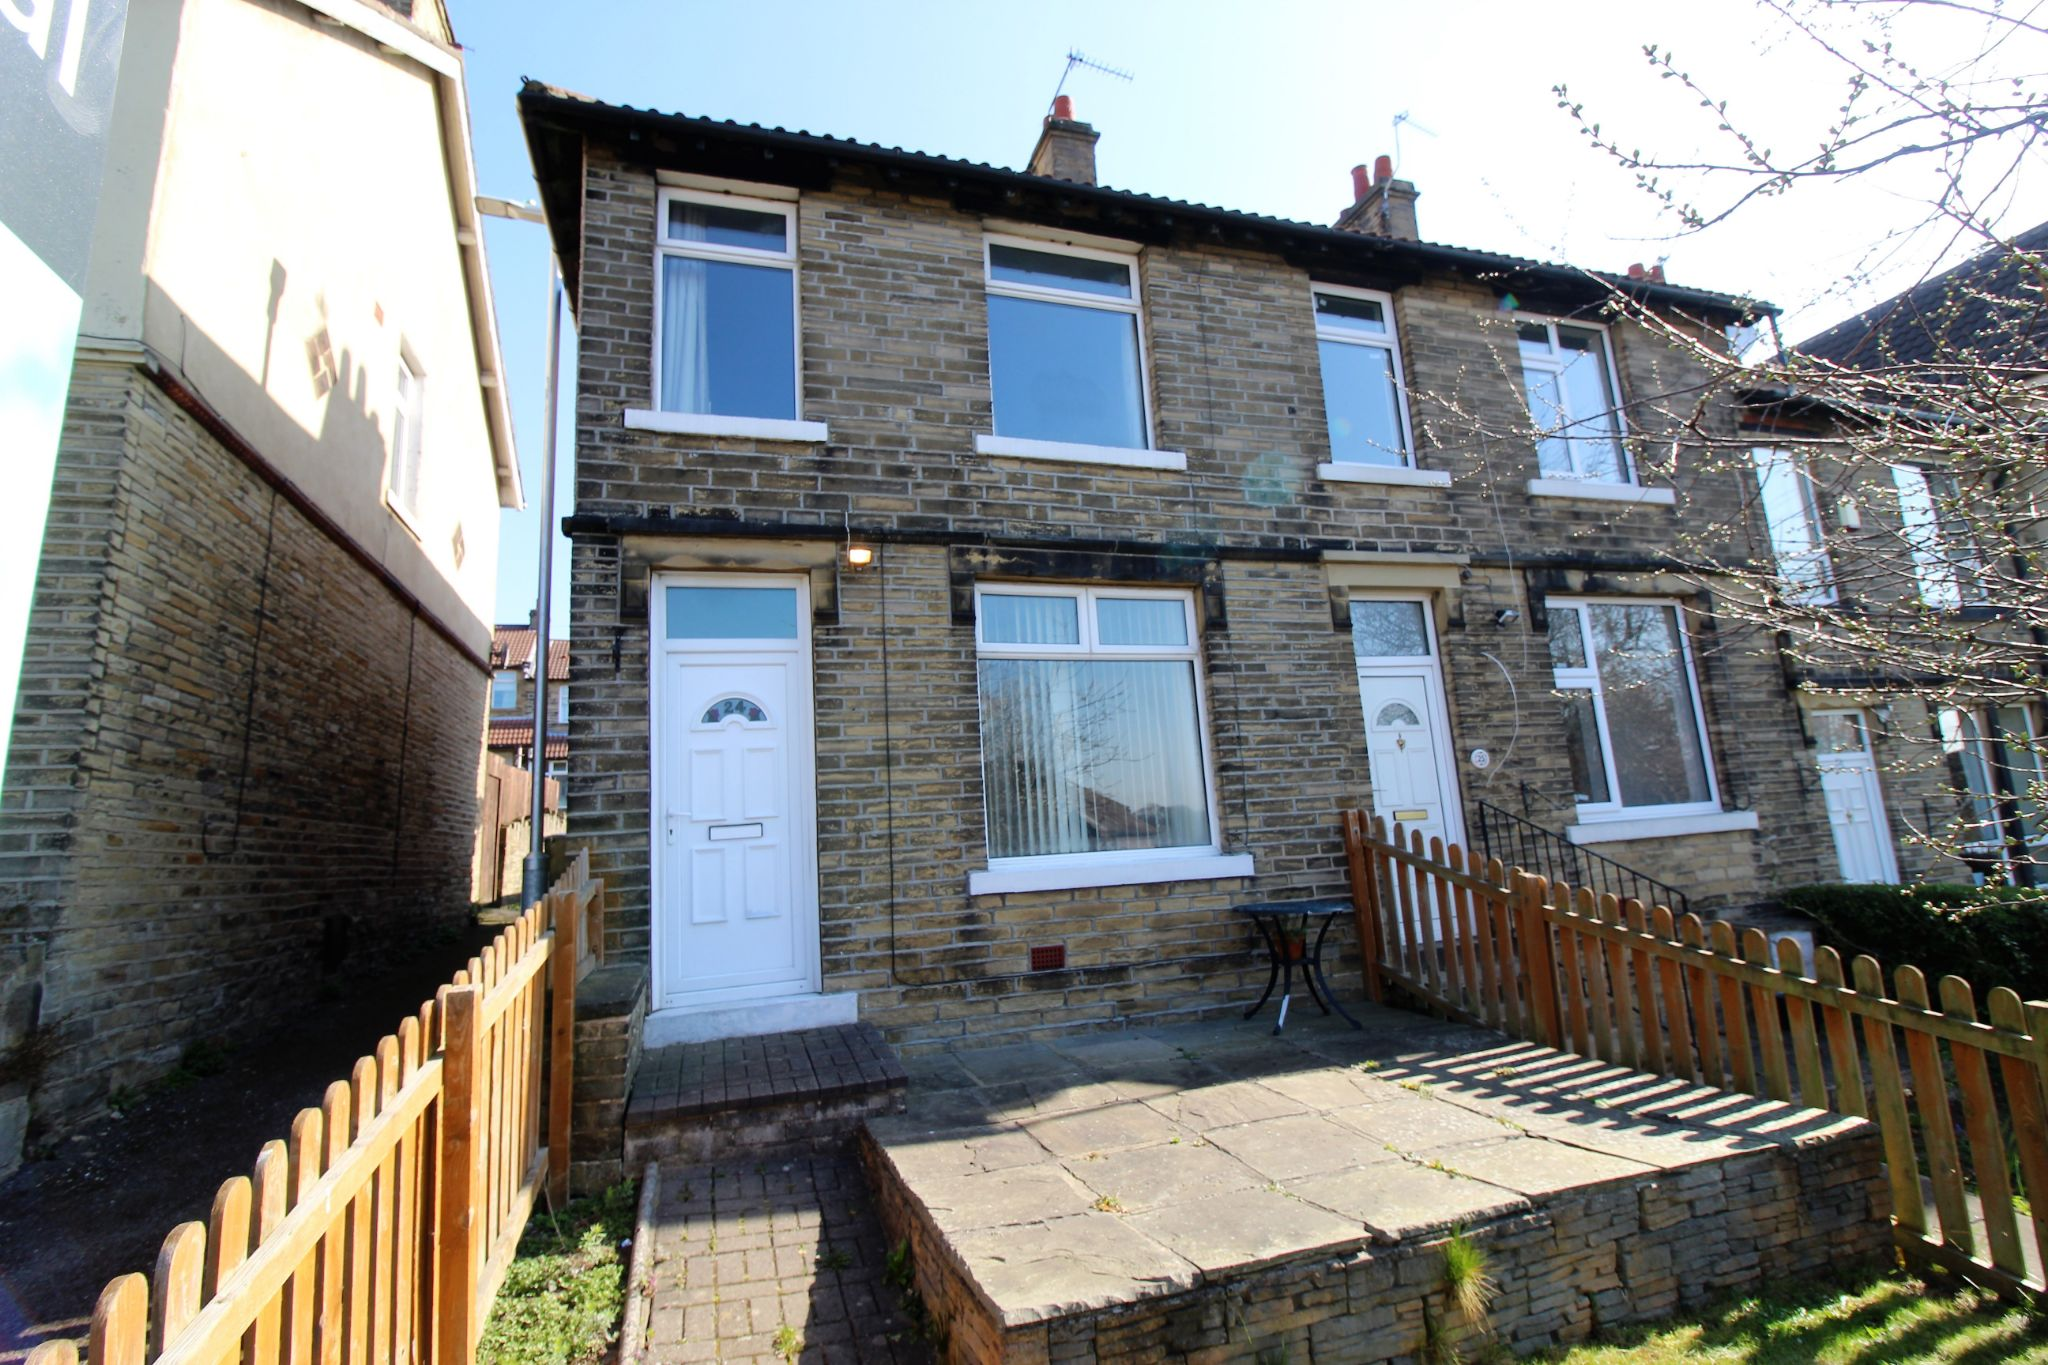 2 bedroom end terraced house SSTC in Brighouse - Photograph 1